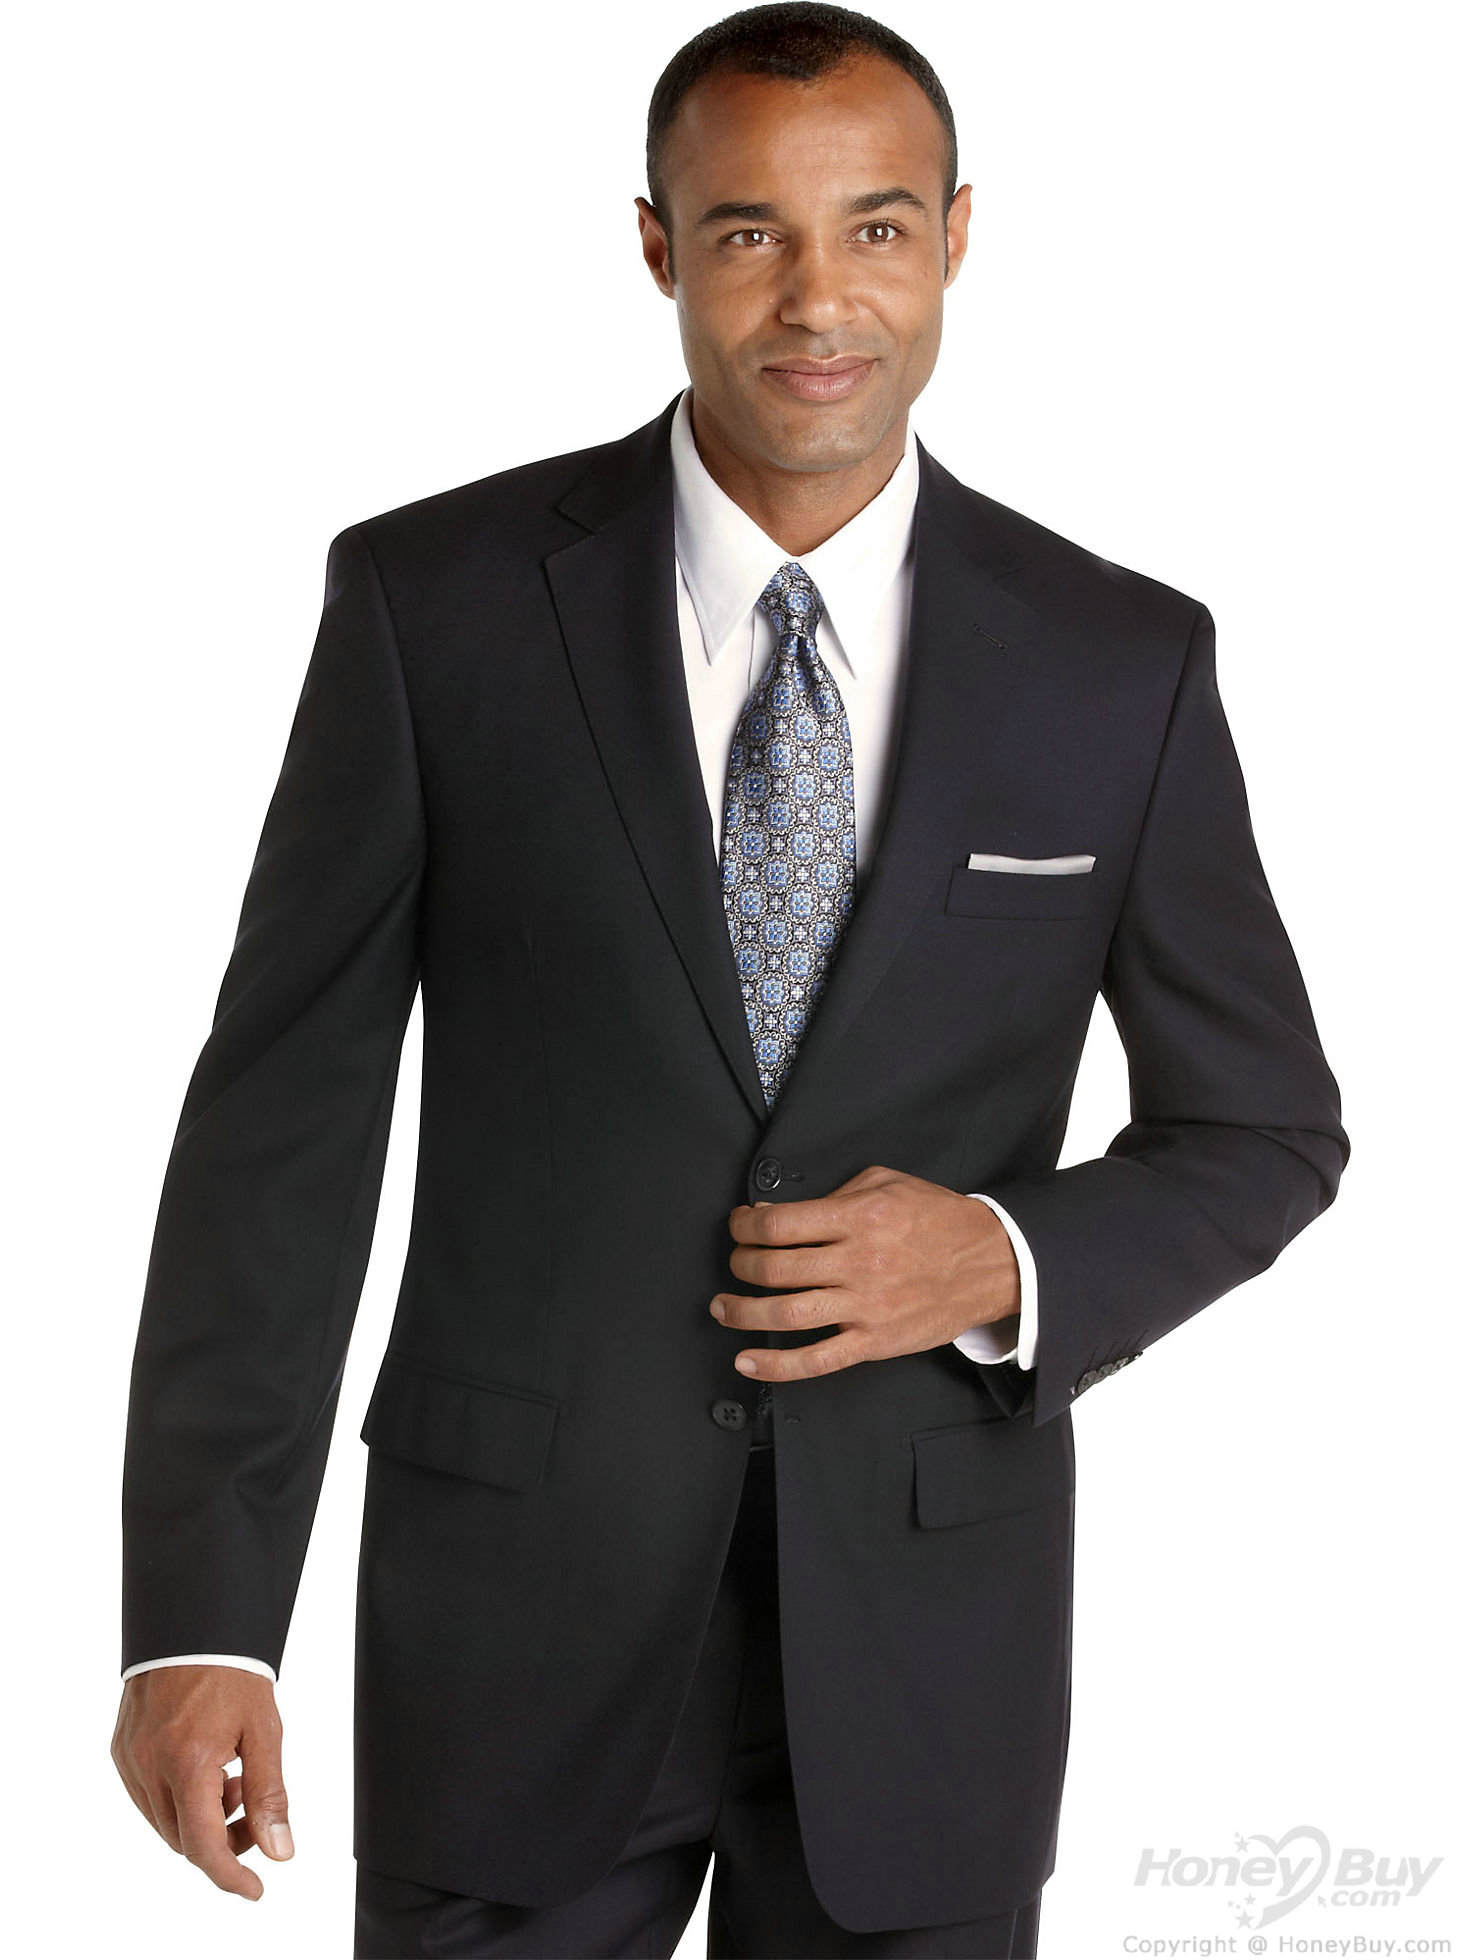 Find great deals on eBay for man suit. Shop with confidence.